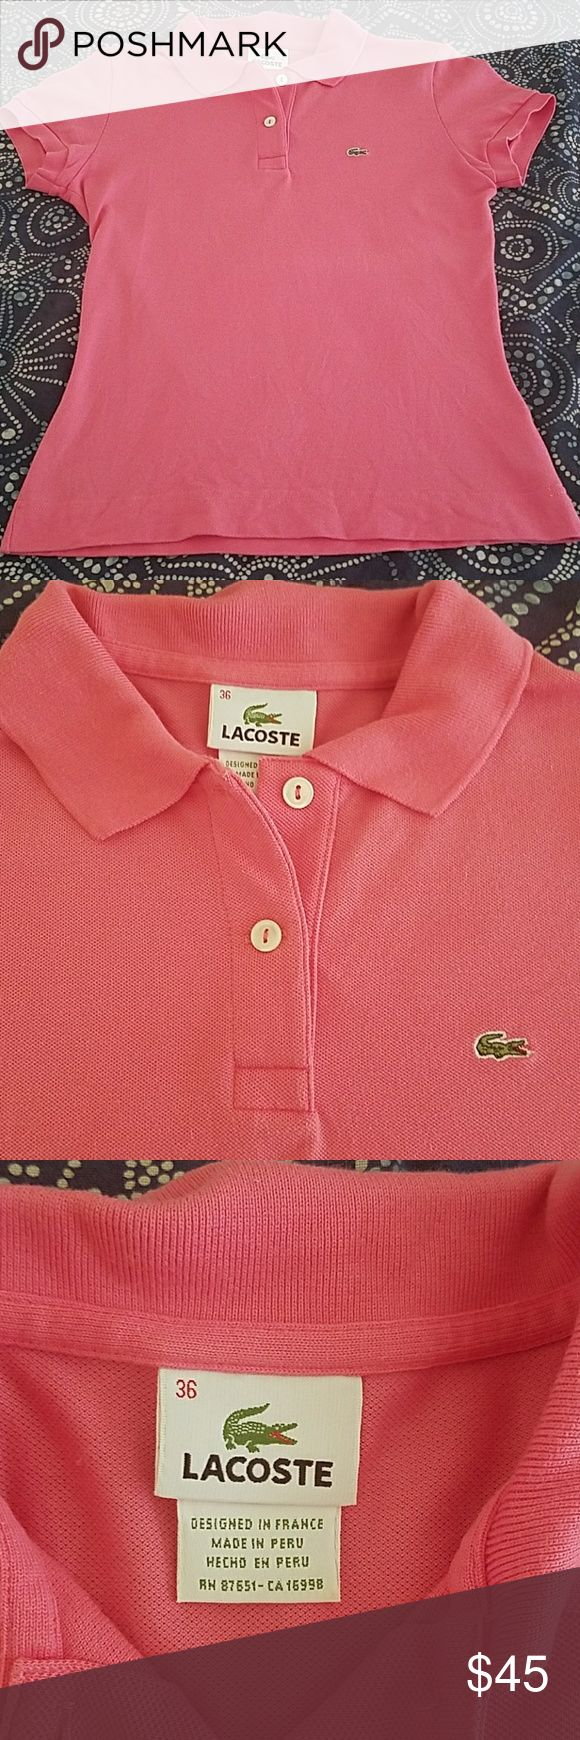 Lacoste Women's Polo 36 Gently used Lacoste Women's Polo Shirt. Size 36. Posted size chart from Macy's website converts it to a 4 or XS/S. No holes or stains. Always hung dry. Logo on chest. Purchased from Nordstrom.   Sorry - no trades. From a smoke-free home. Bundle and save! Lacoste Tops